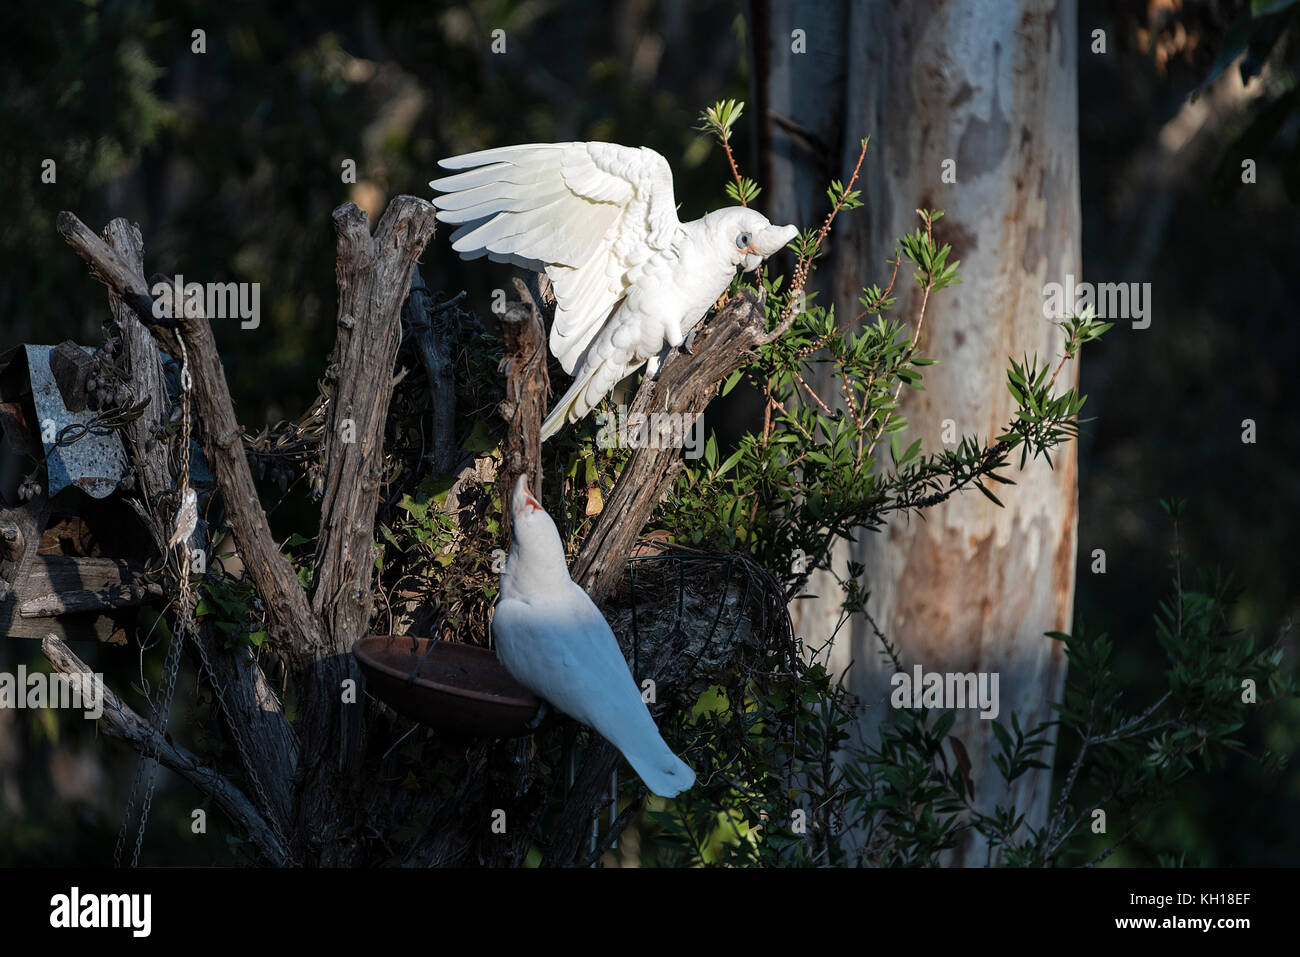 A pair of  Little Corellas feeding in a residential garden on the Sunshine Coast, Queensland, Australia - Stock Image